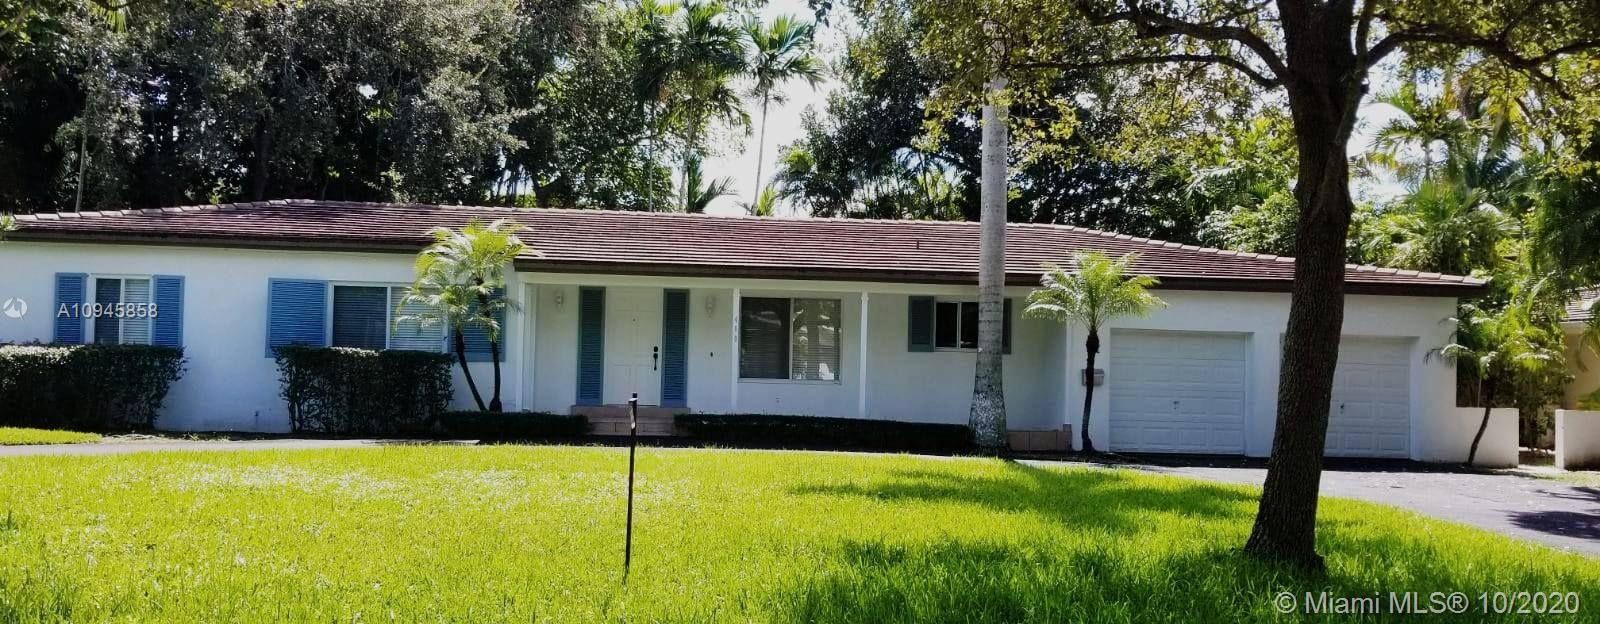 Undisclosed For Sale A10945858, FL